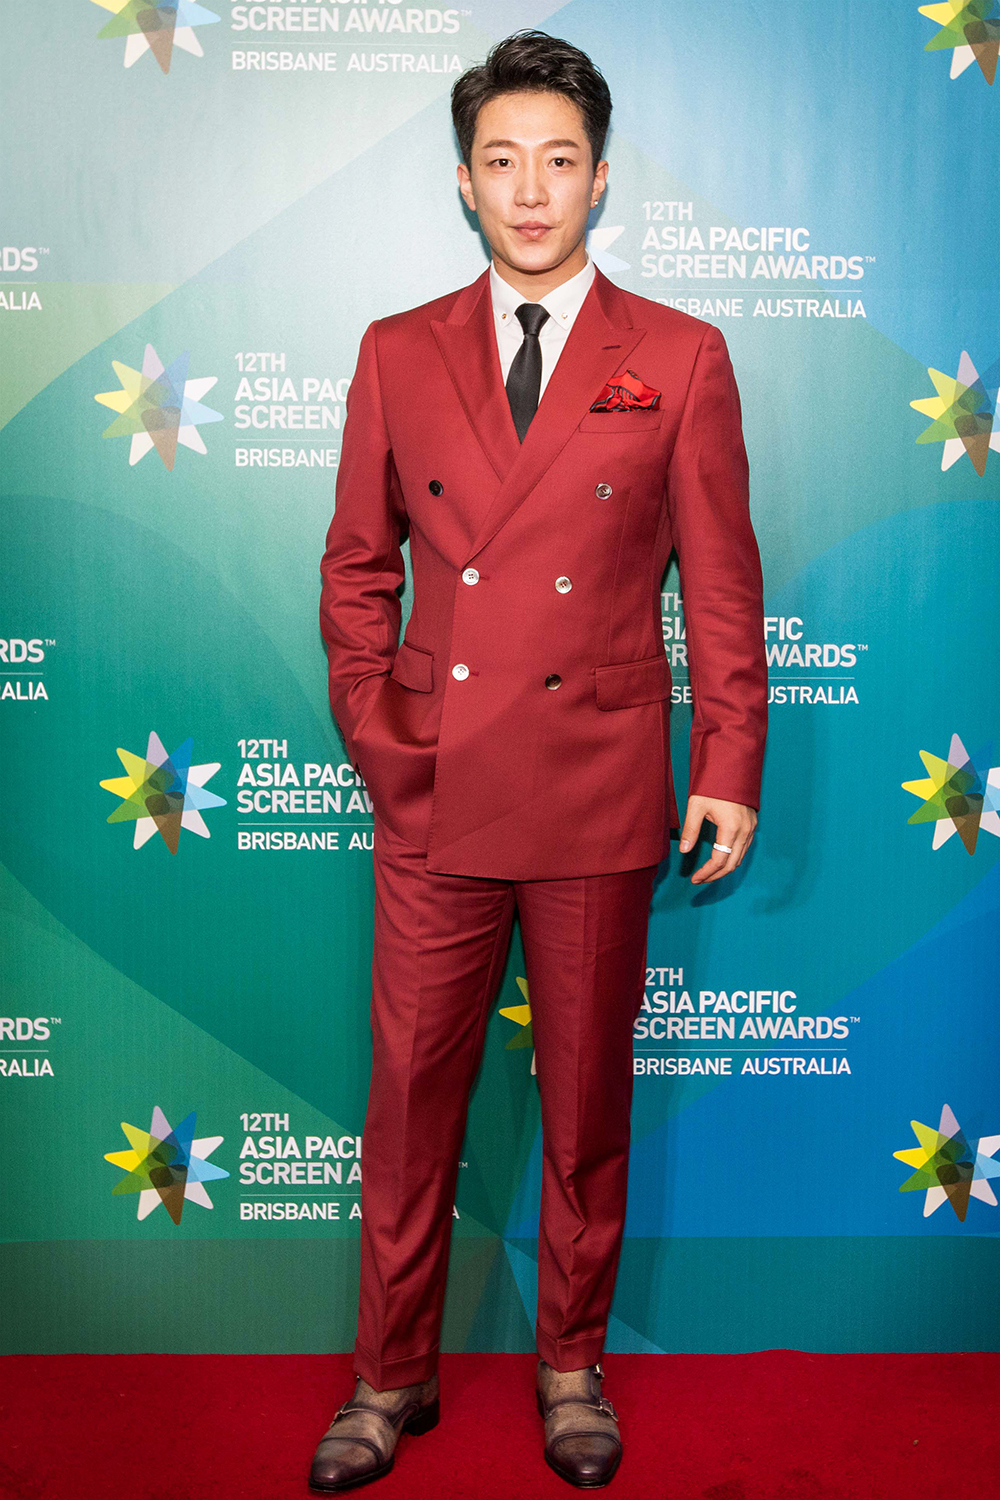 Mens Fashion on the Red Carpet at the APSA in Brisbane